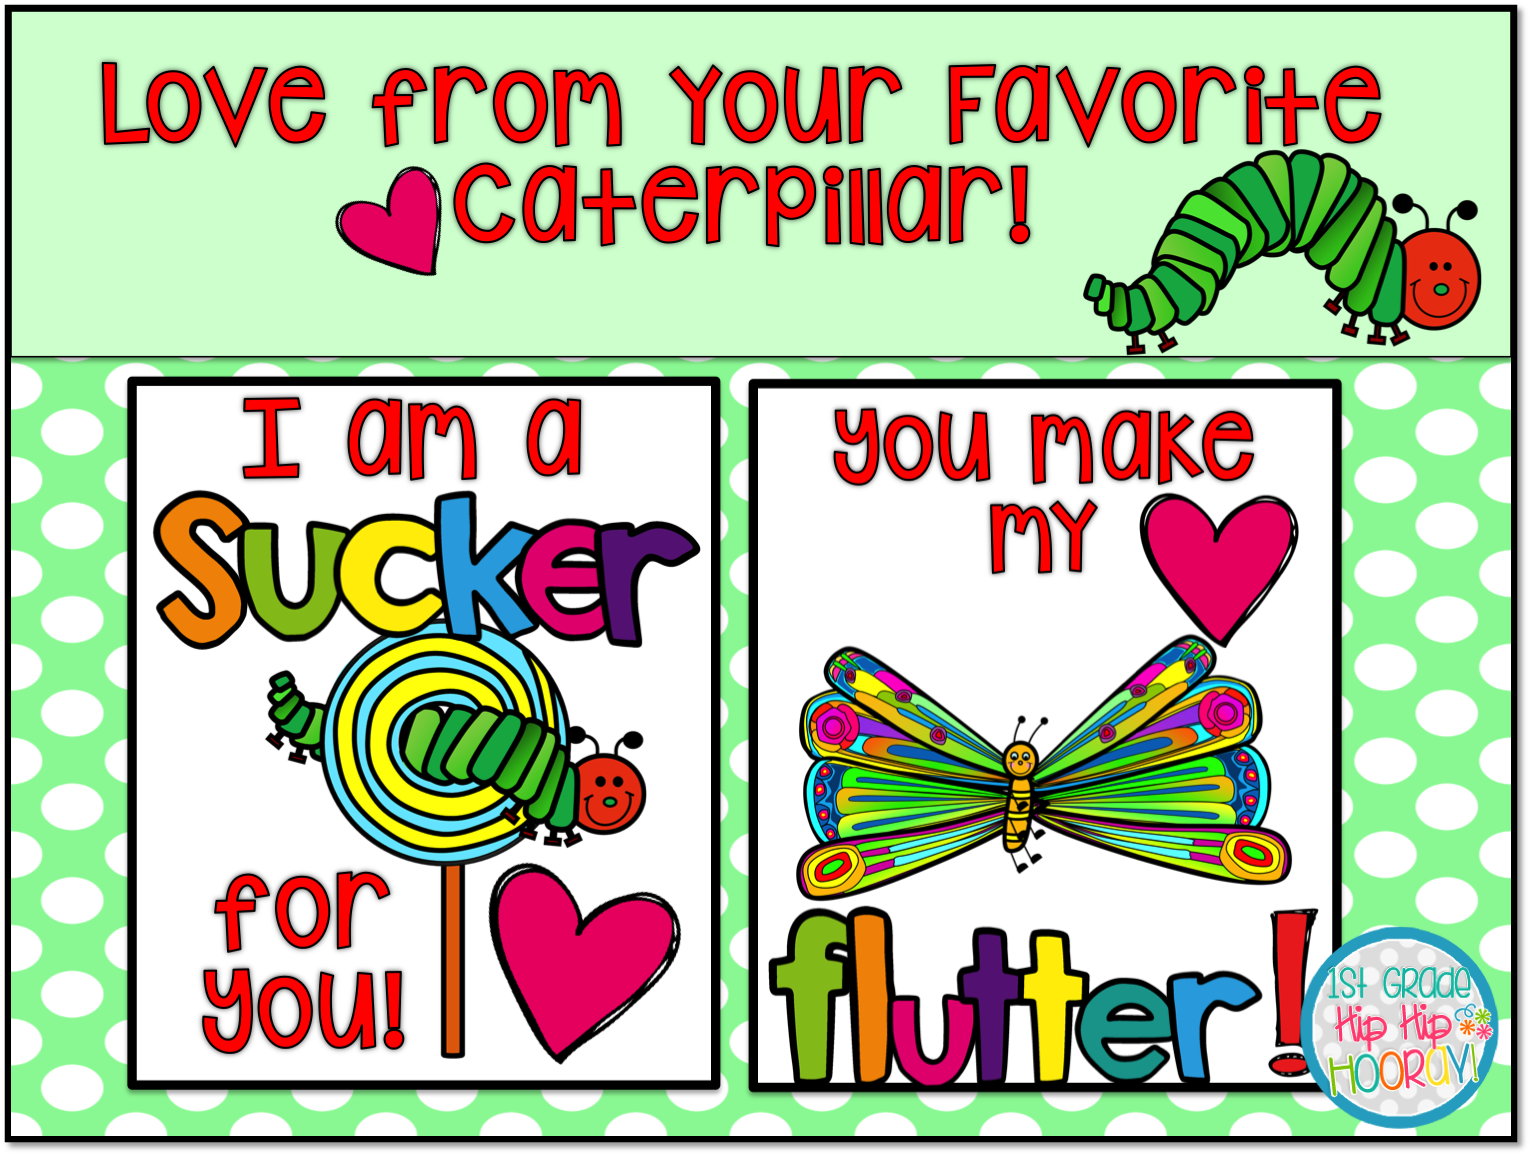 1st Grade Hip Hip Hooray Valentine Cards For Your Kiddos